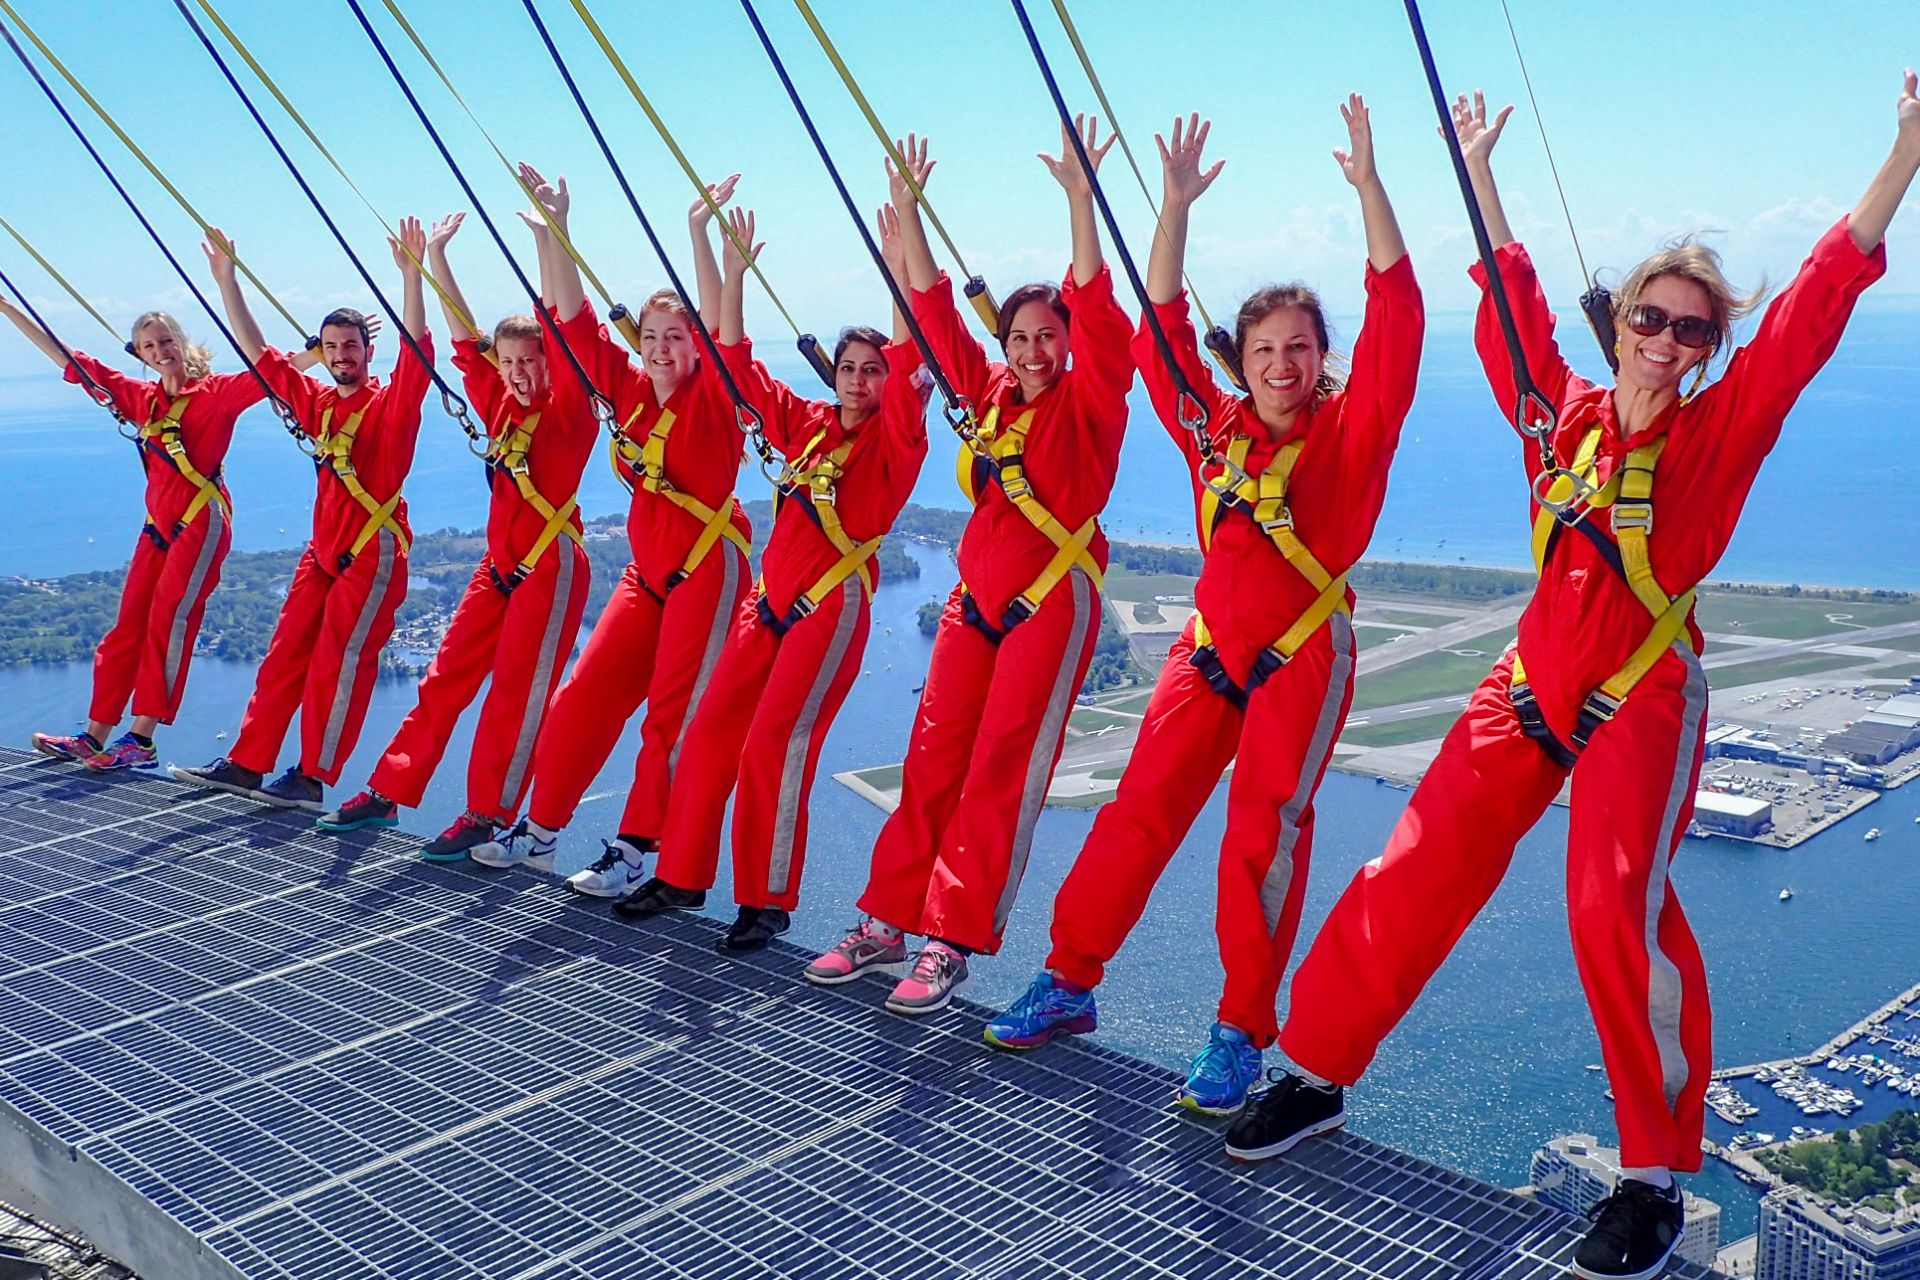 group-of-people-hanging-off-the-edge-of-a-tower-edgewalk-toronto-cn-tower-adrenaline-junkie-bucket-list